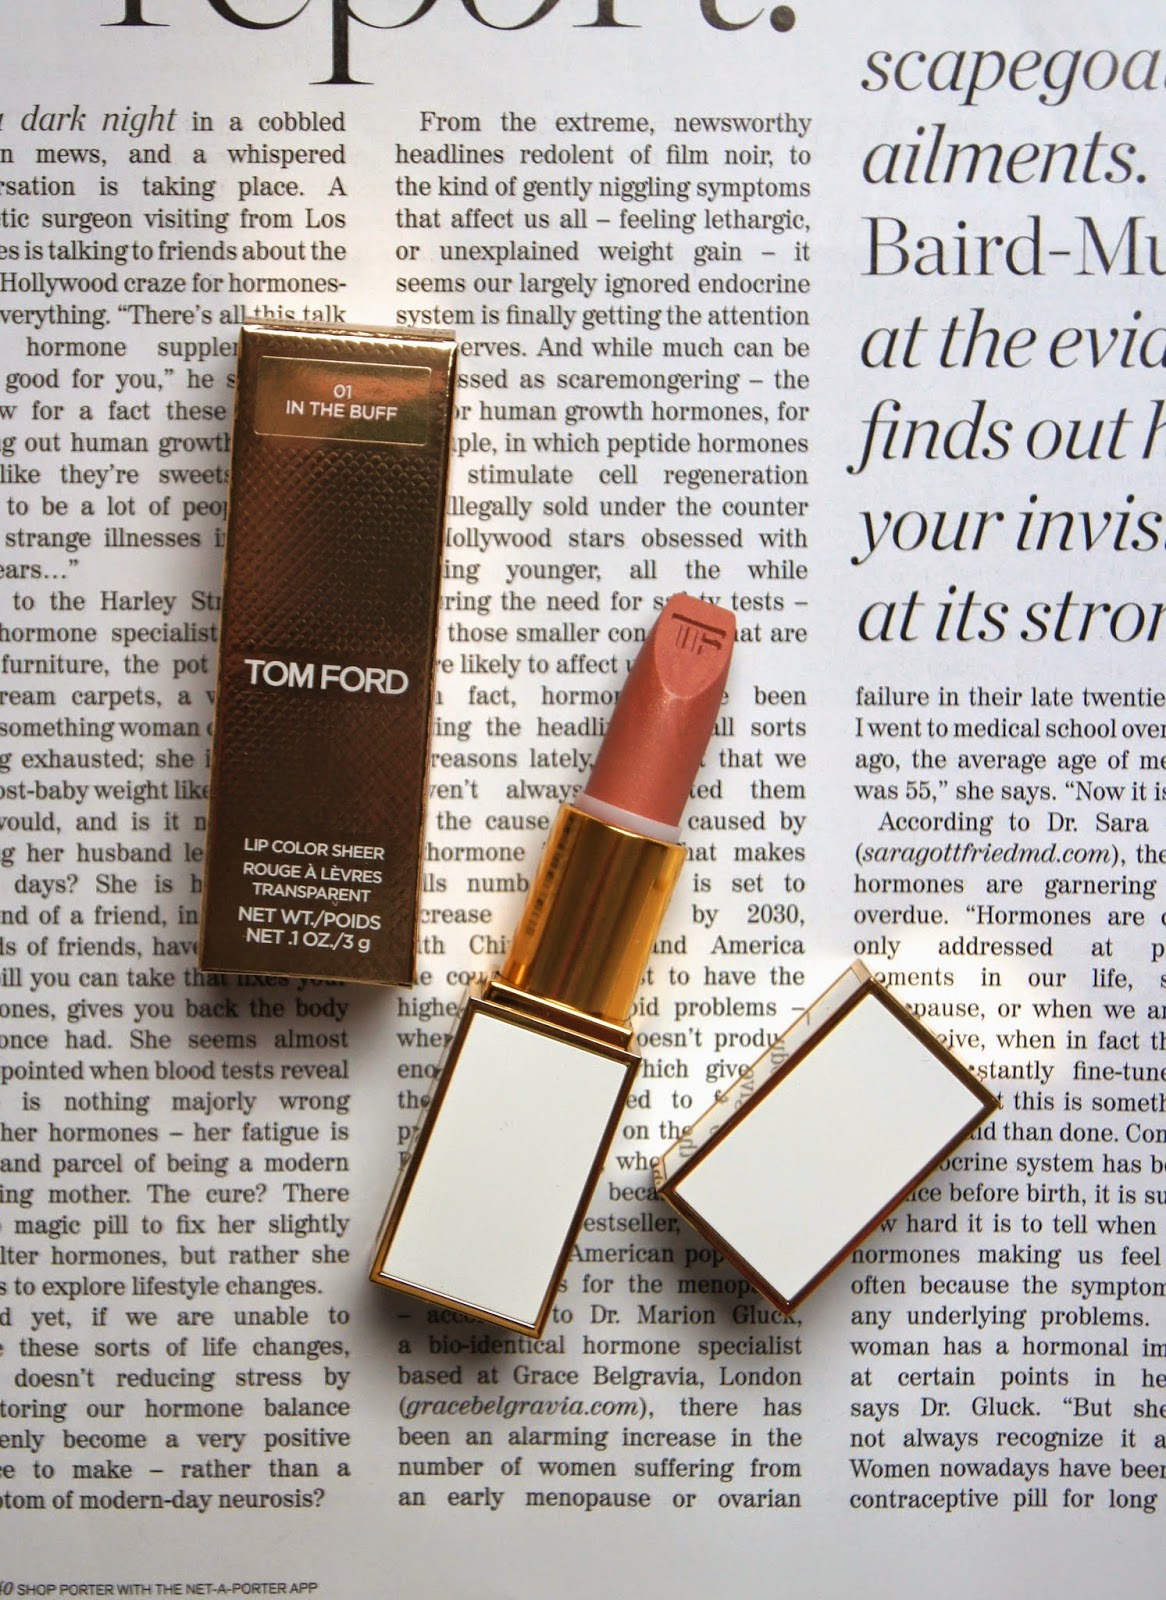 tom ford lip color sheer lipstick review